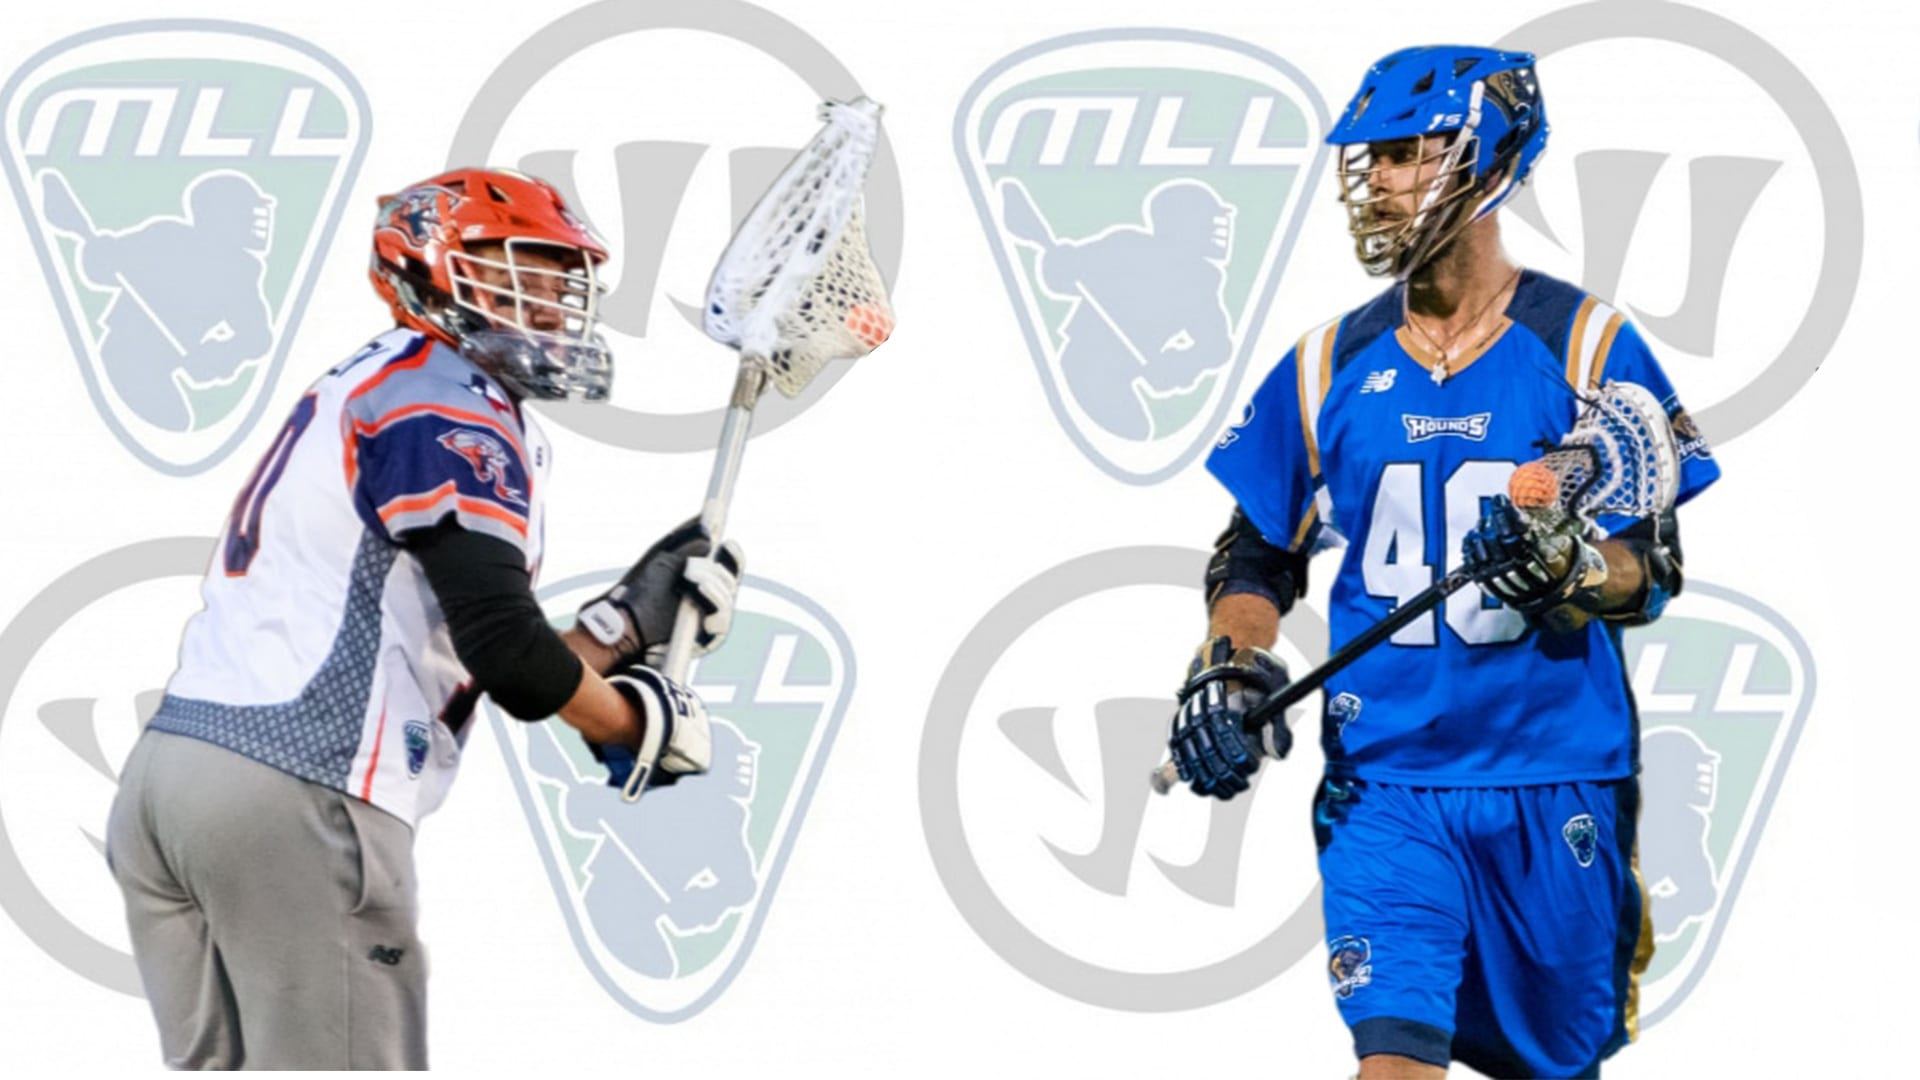 Blaze Riorden, Kevin Cooper - MLL Players of Week 1